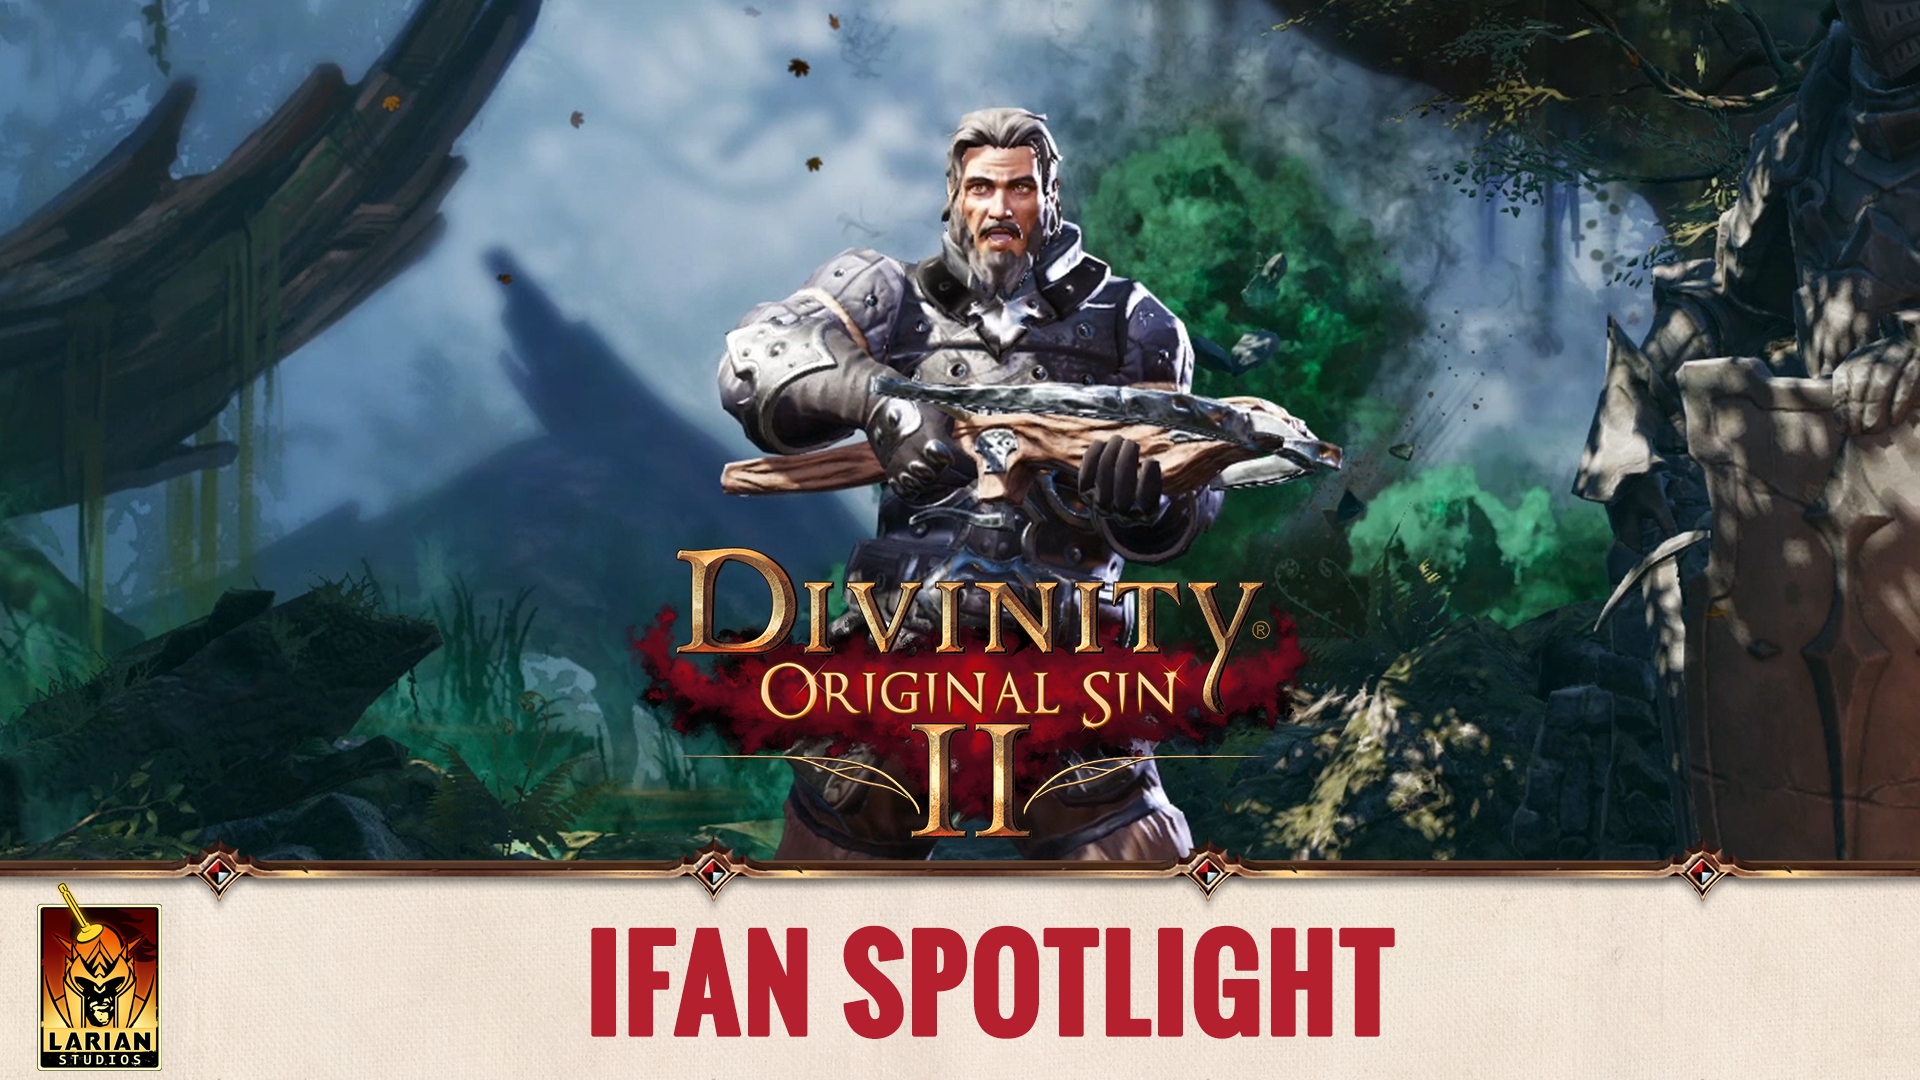 Sep 13, 2017 Divinity: Original Sin 2 might be out tomorrow